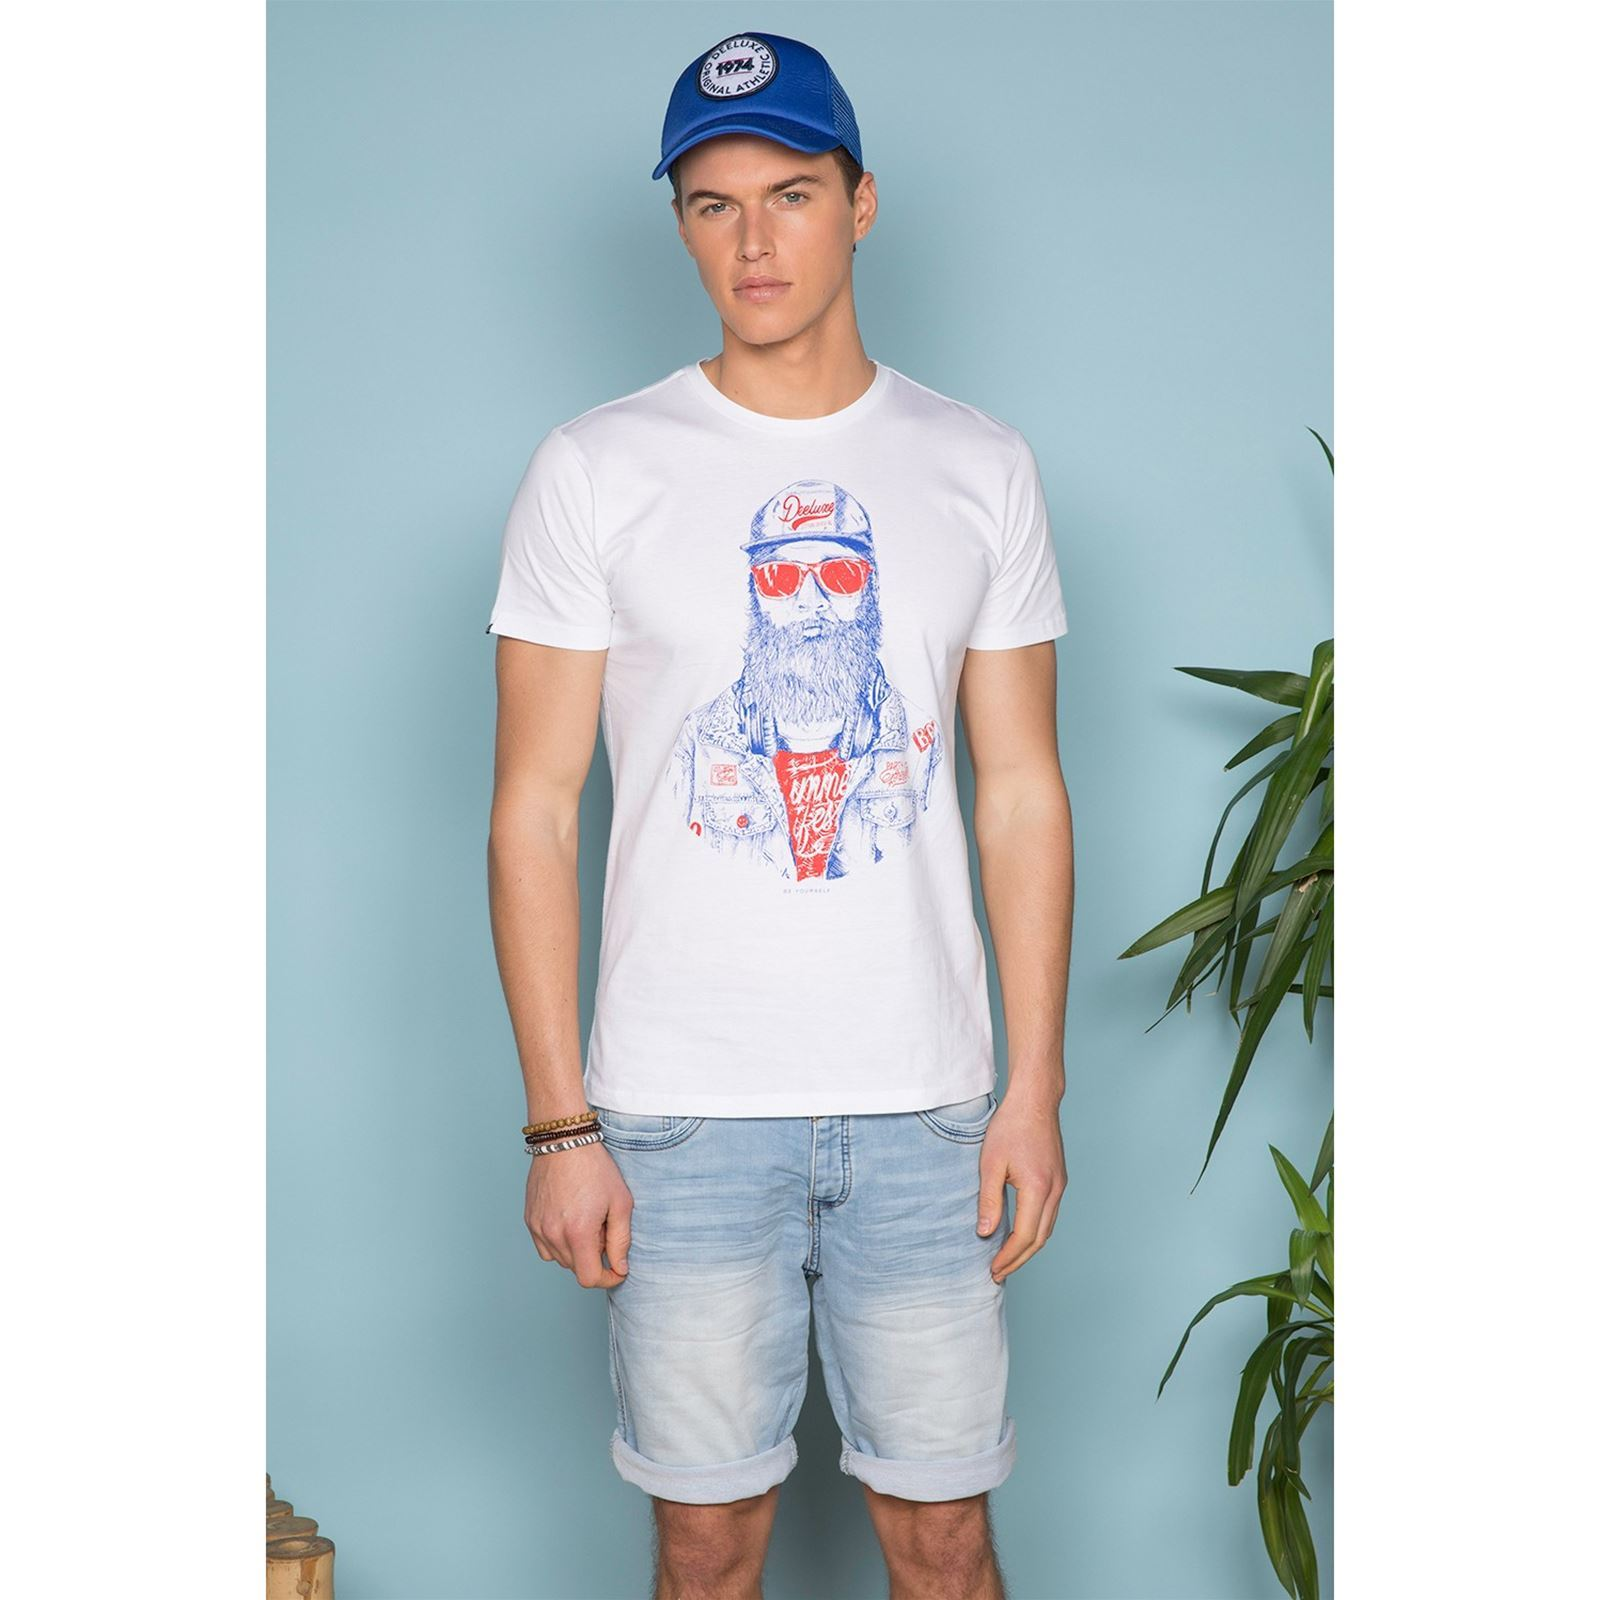 V Manches Homme Deeluxe Courtes TellonT Blanc shirt OPm80wnyvN